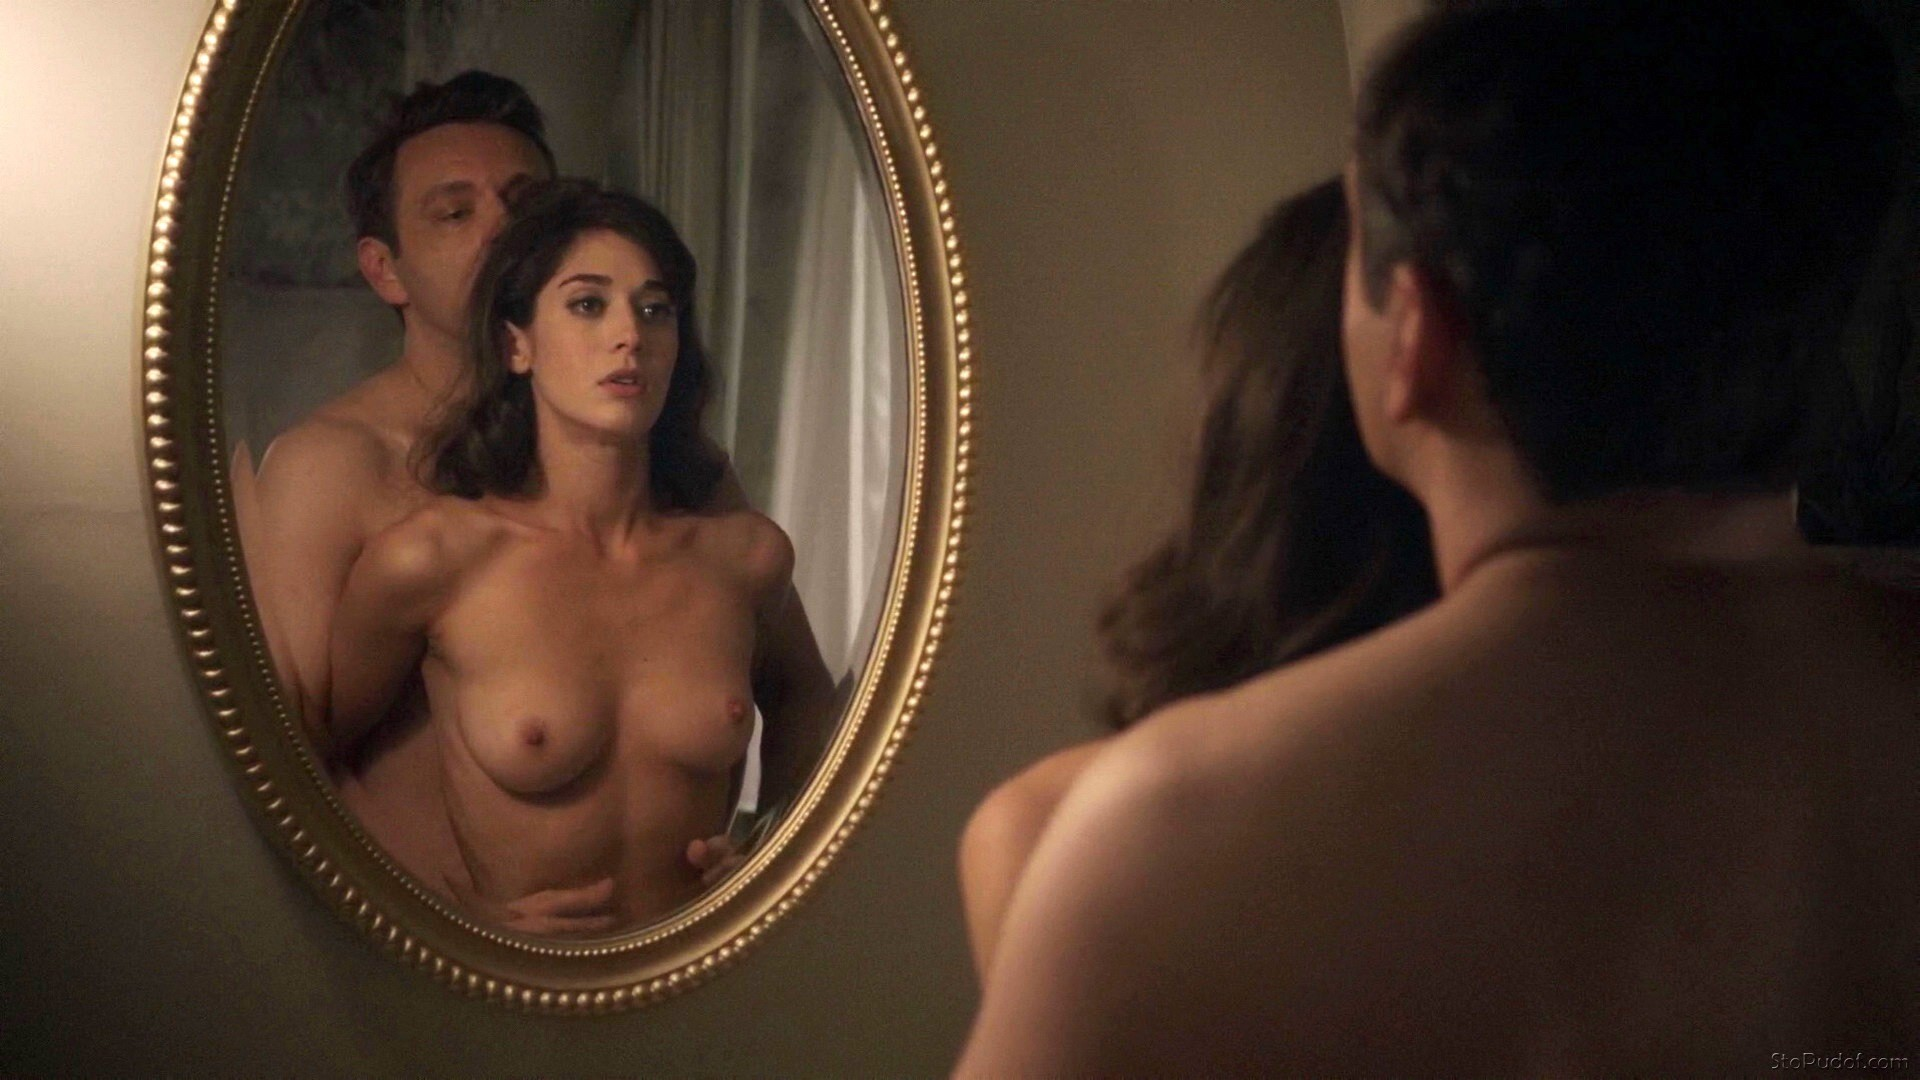 Lizzy Caplan leaked pictures naked - UkPhotoSafari